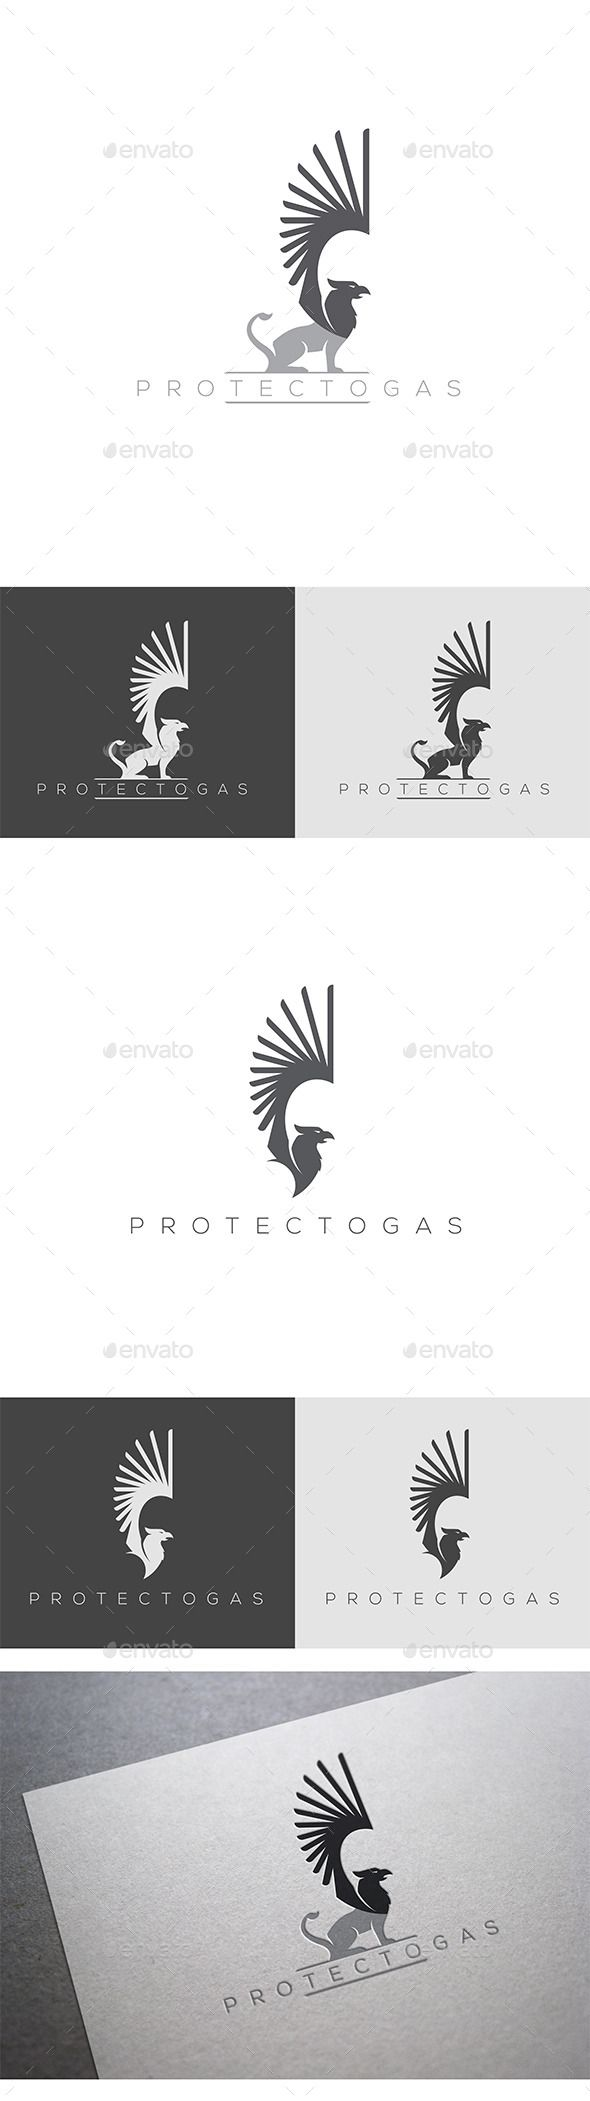 Griffin  Logo Design Template Vector #logotype Download it here: http://graphicriver.net/item/griffin-logo-template/9953334?s_rank=609?ref=nesto